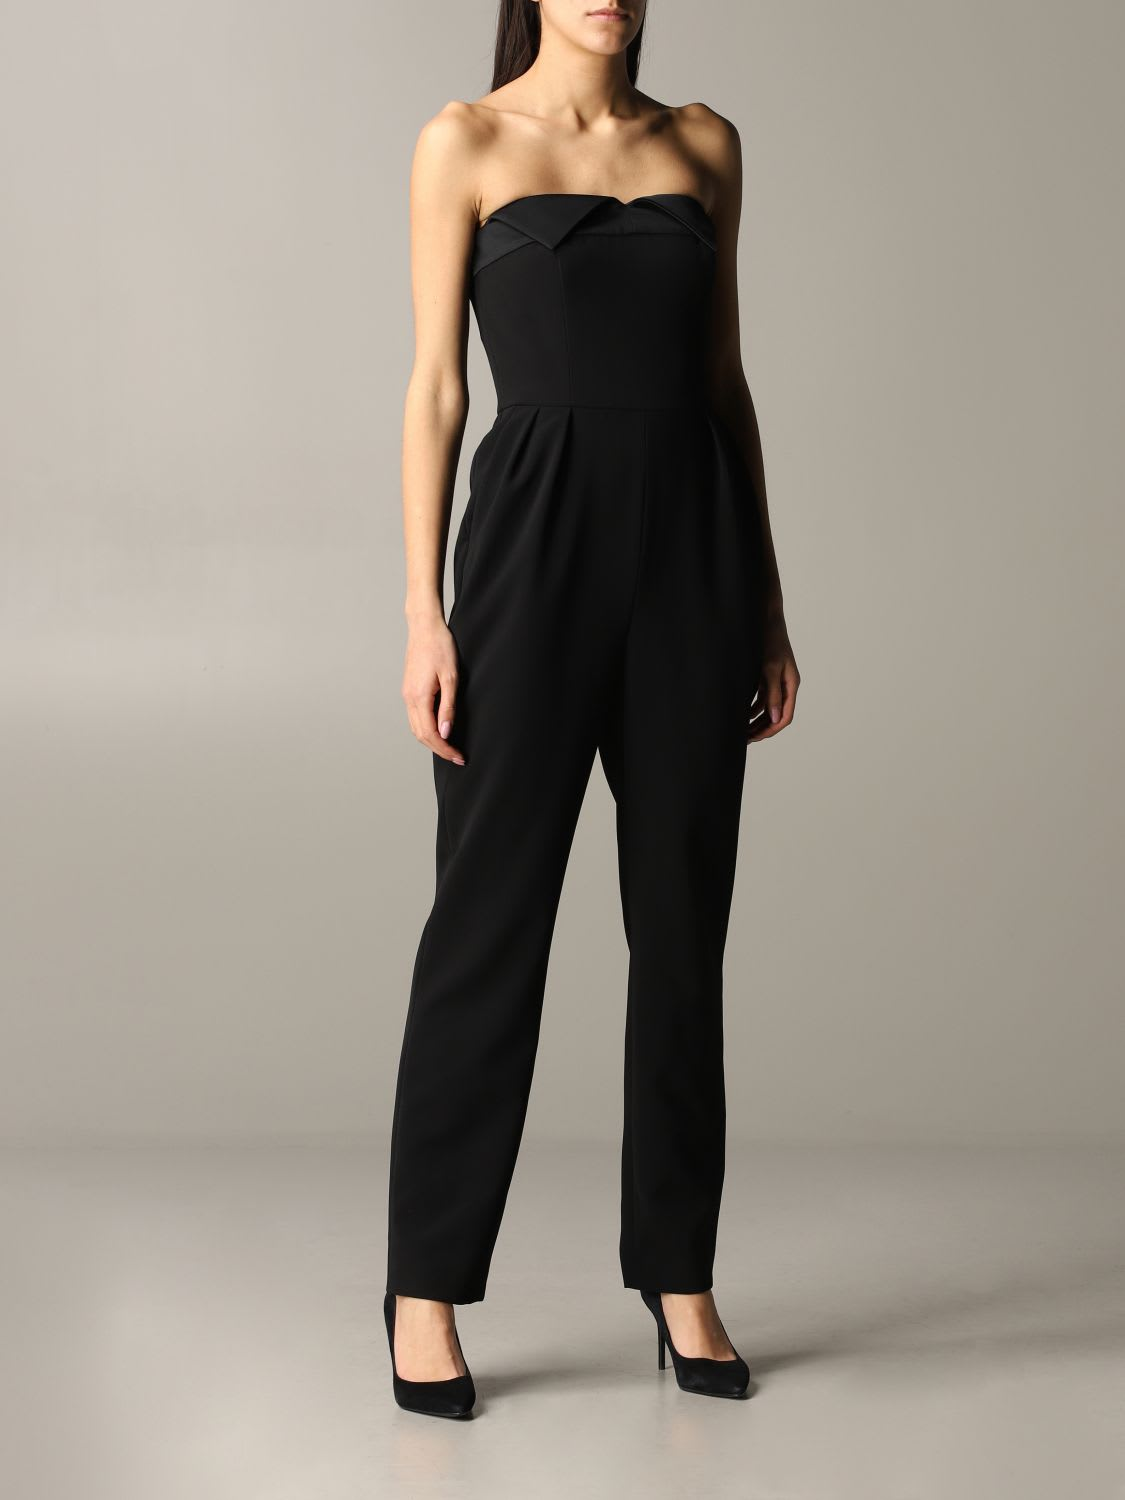 Buy Moschino Couture Jumpsuits Dress Women Moschino Couture online, shop Moschino with free shipping